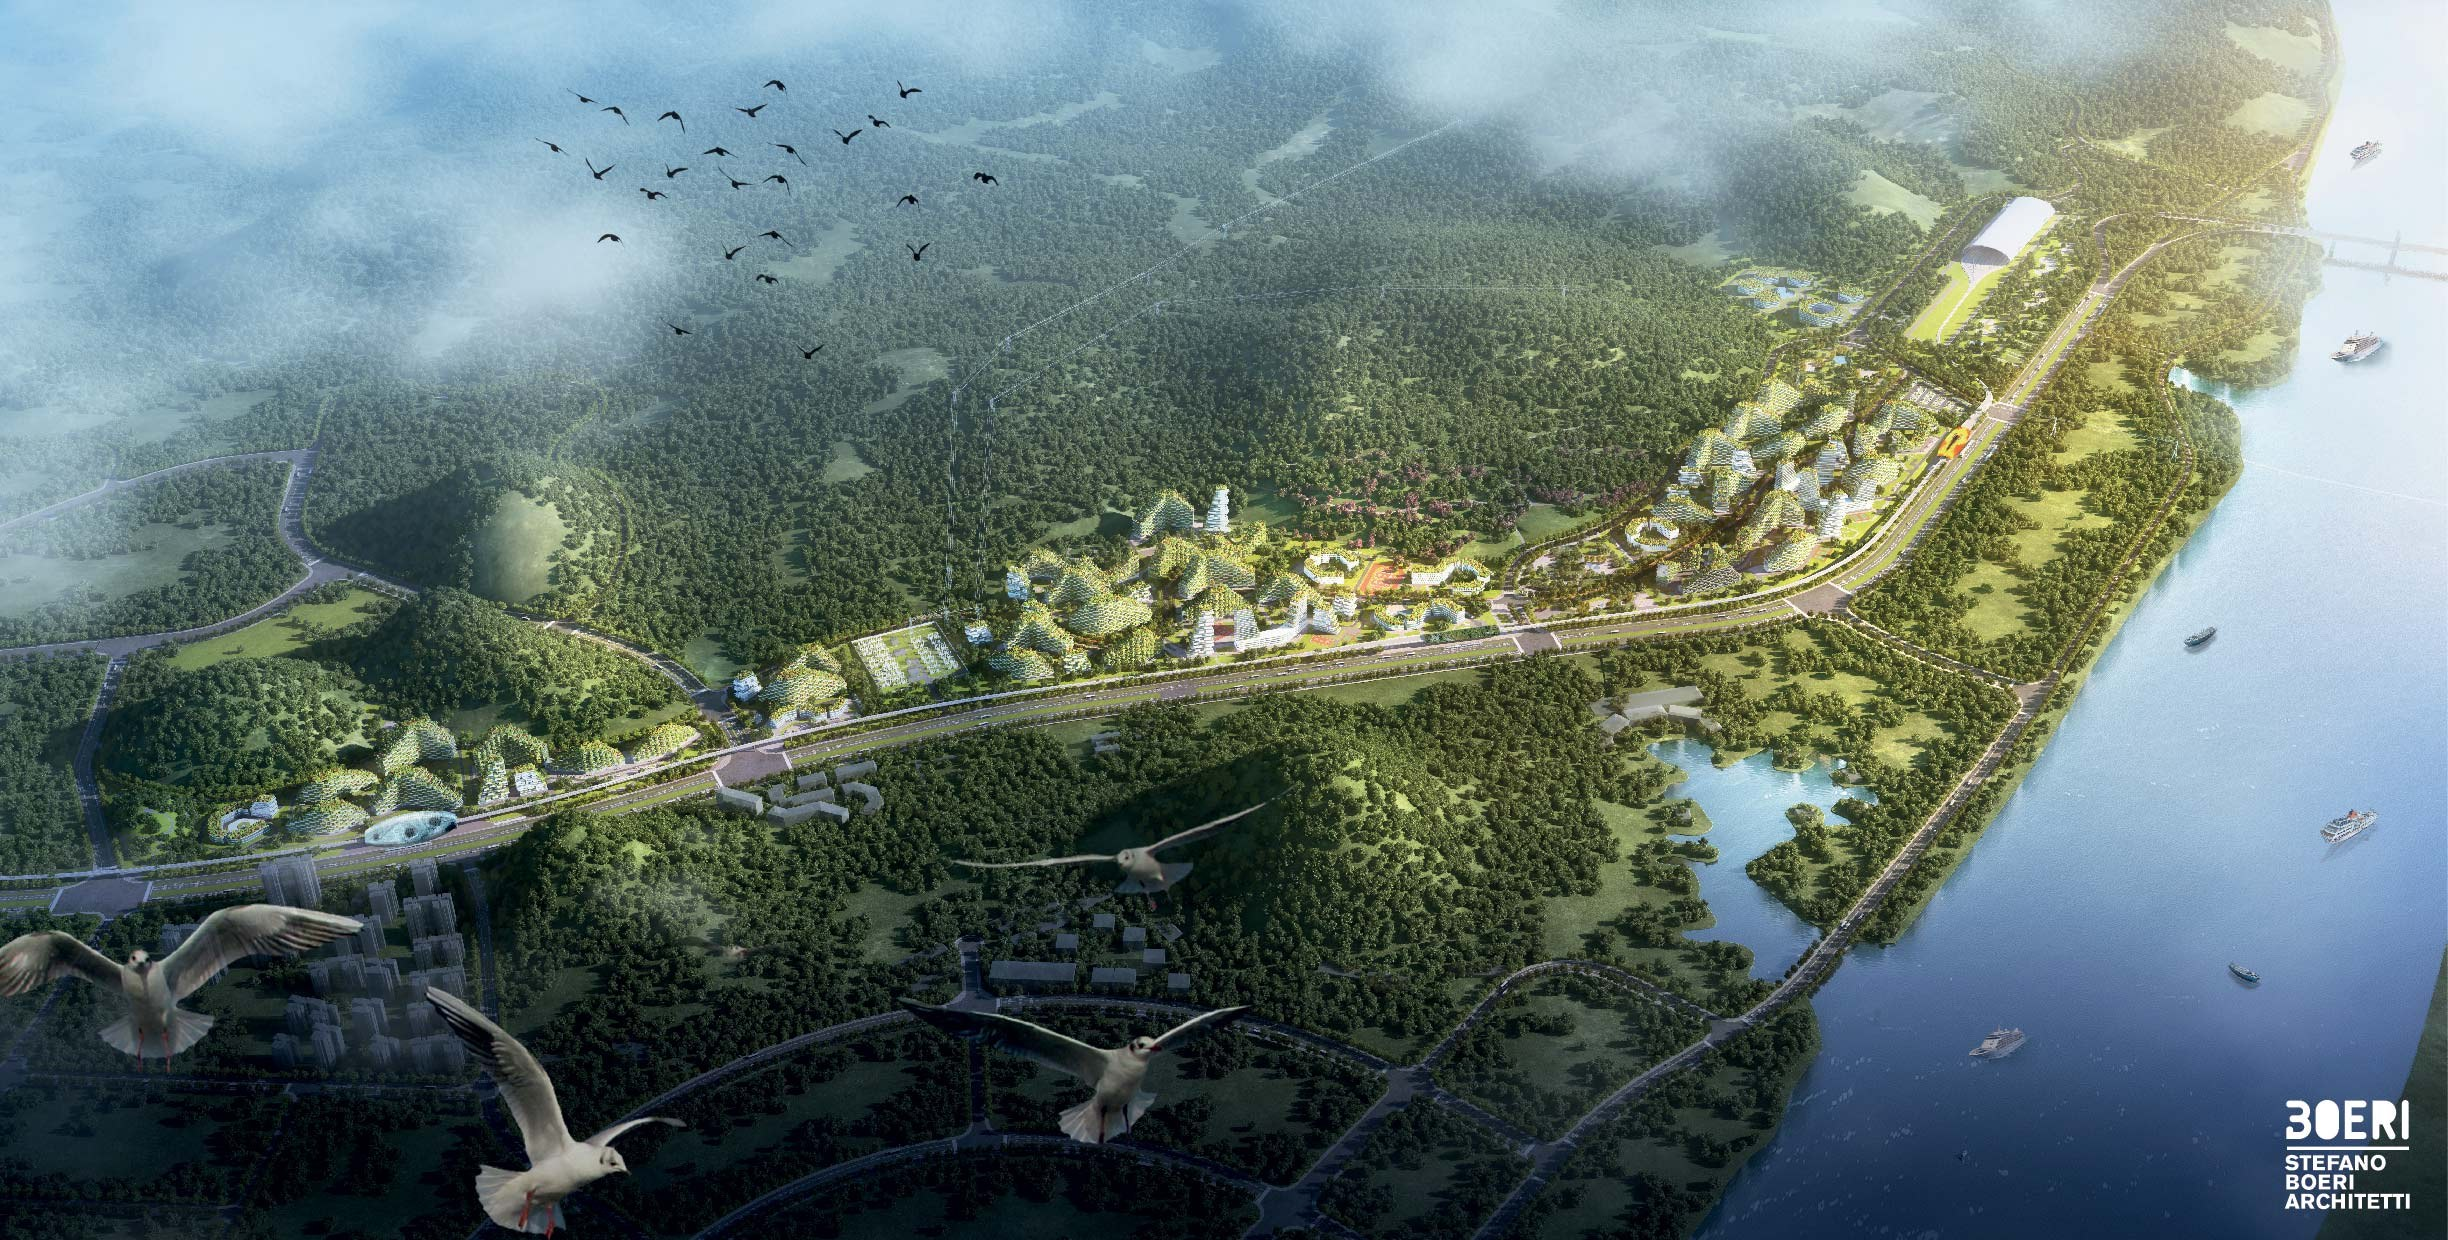 birds-eyes view of Liuzhou Forest City, China. CREDIT: Stefano Boeri Architect